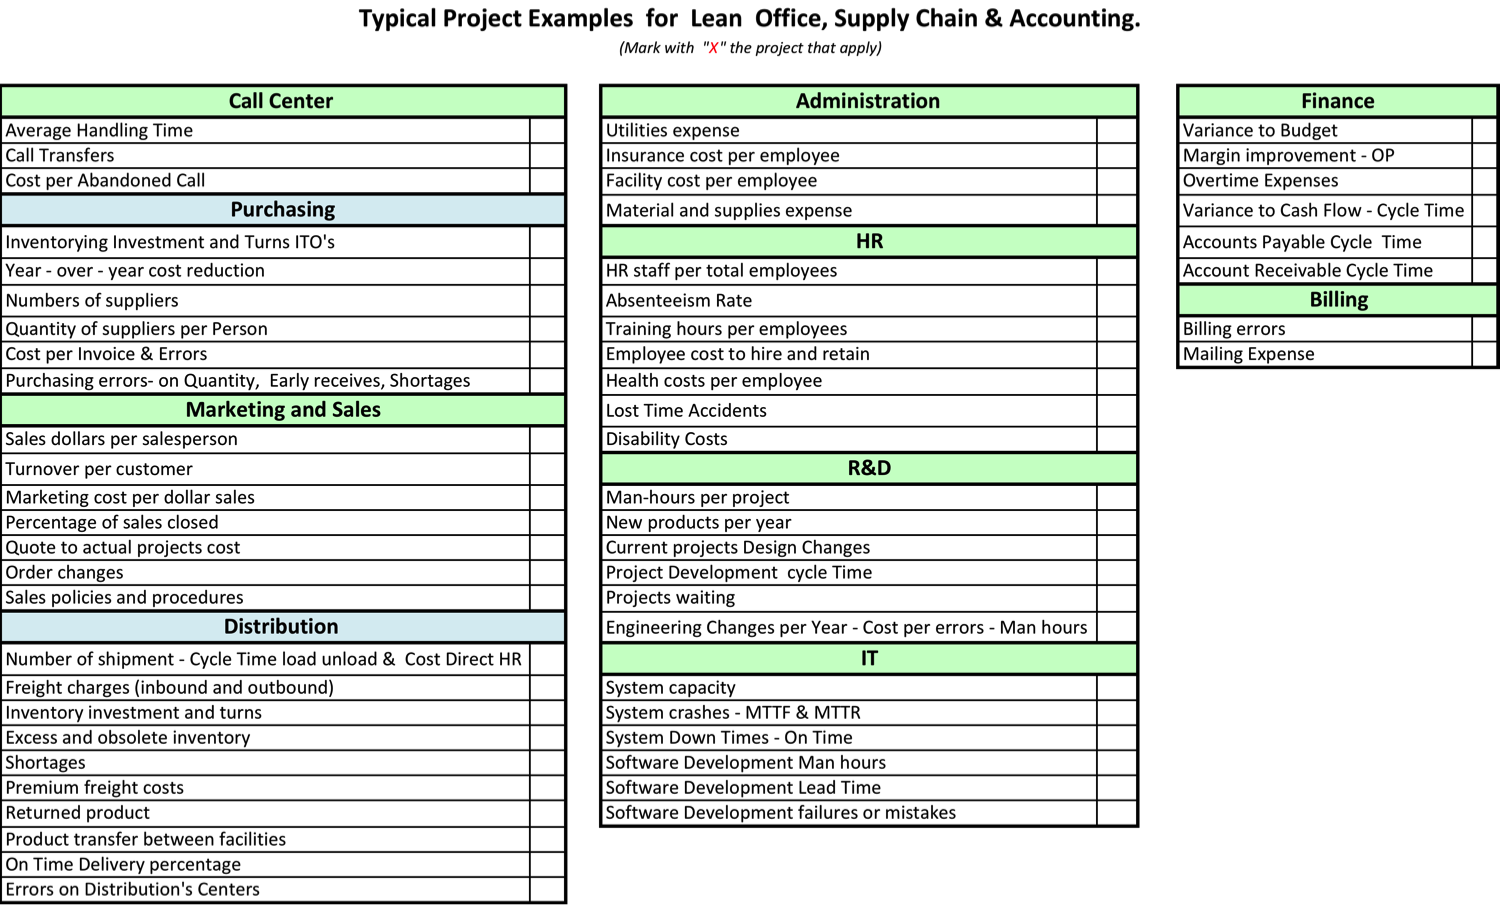 Typical project examples for Lean Office, Supply Chain